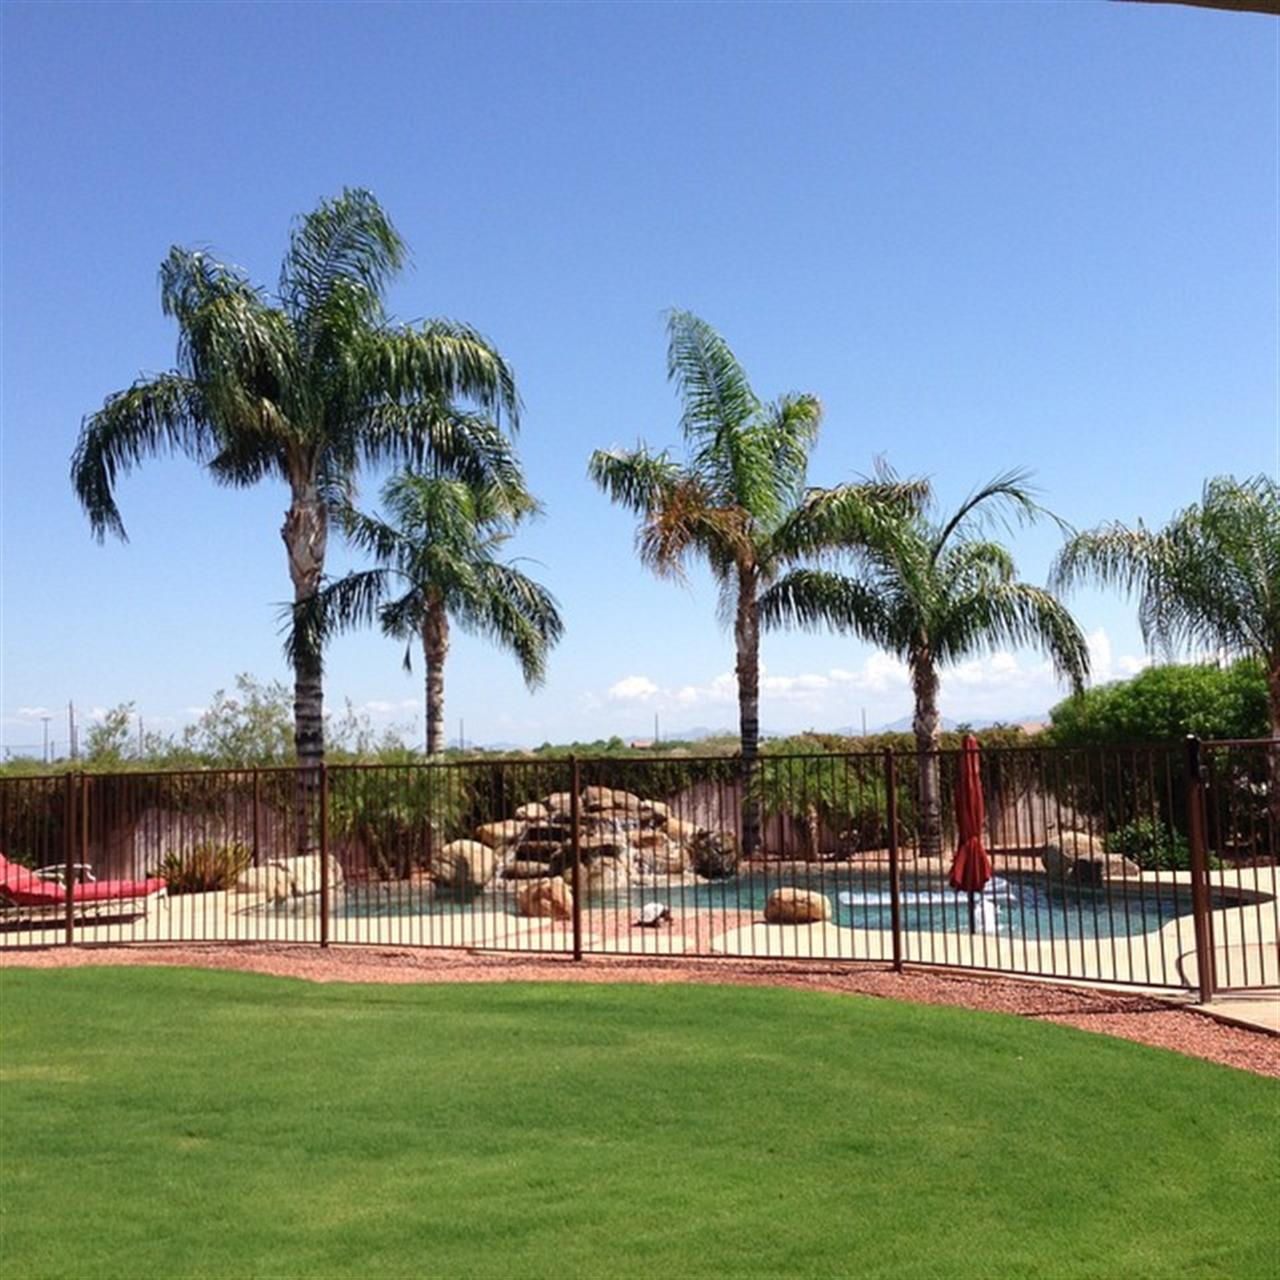 It's a beautiful day in Queen Creek, AZ. #LeadingRELocal